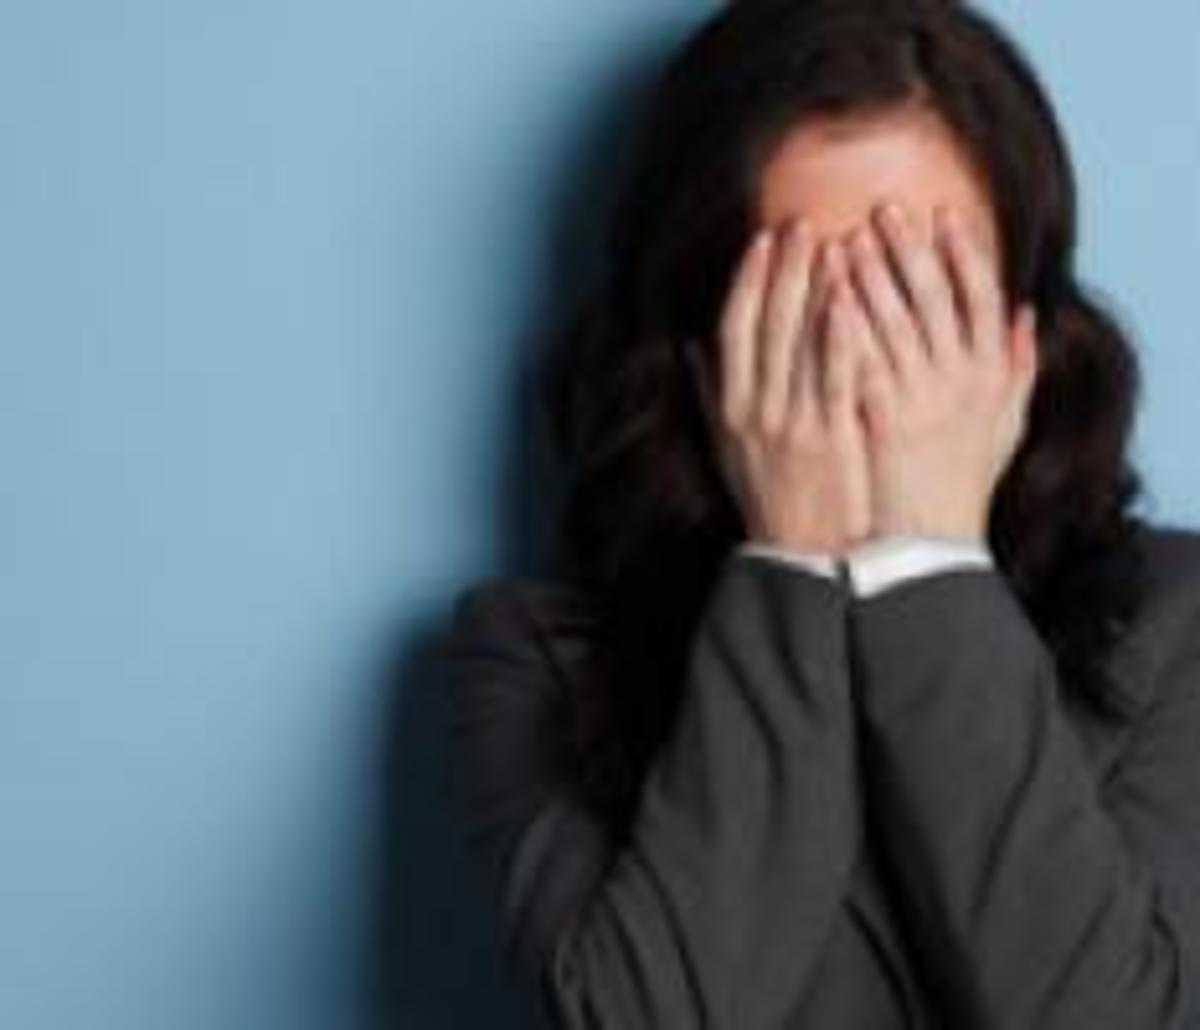 Sheltered adult children are in for quite a CULTURE SHOCK when they enter the work world.There they are expected to use judgement &think independently. Sadly,many are unable to do this being overly dependent upon superiors to make decisions for them.